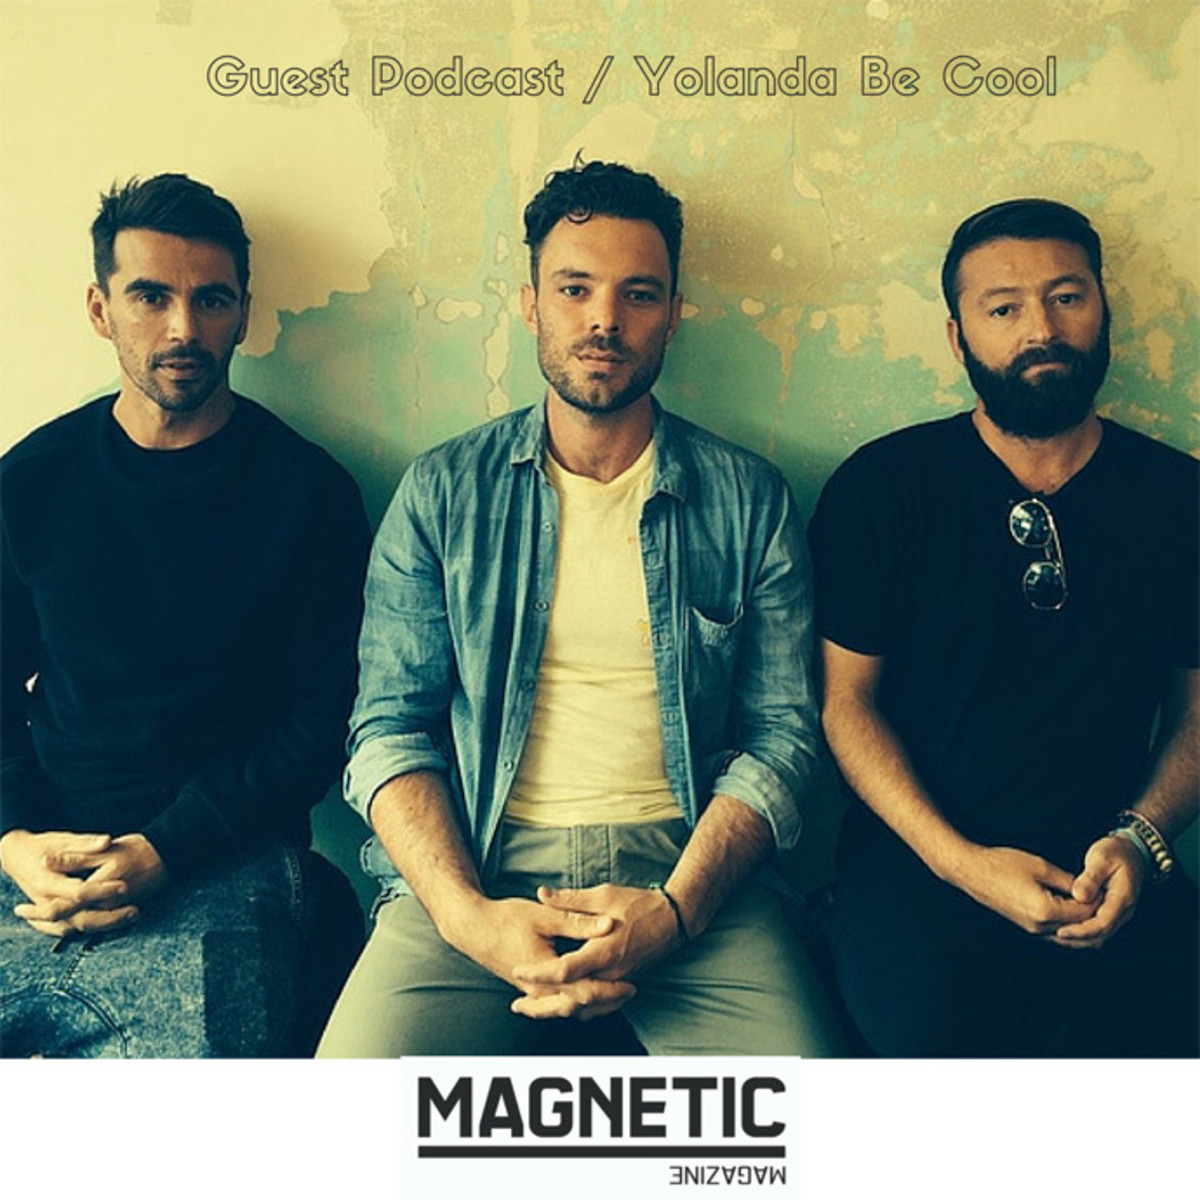 Magnetic Magazine Guest Podcast: Yolanda Be Cool